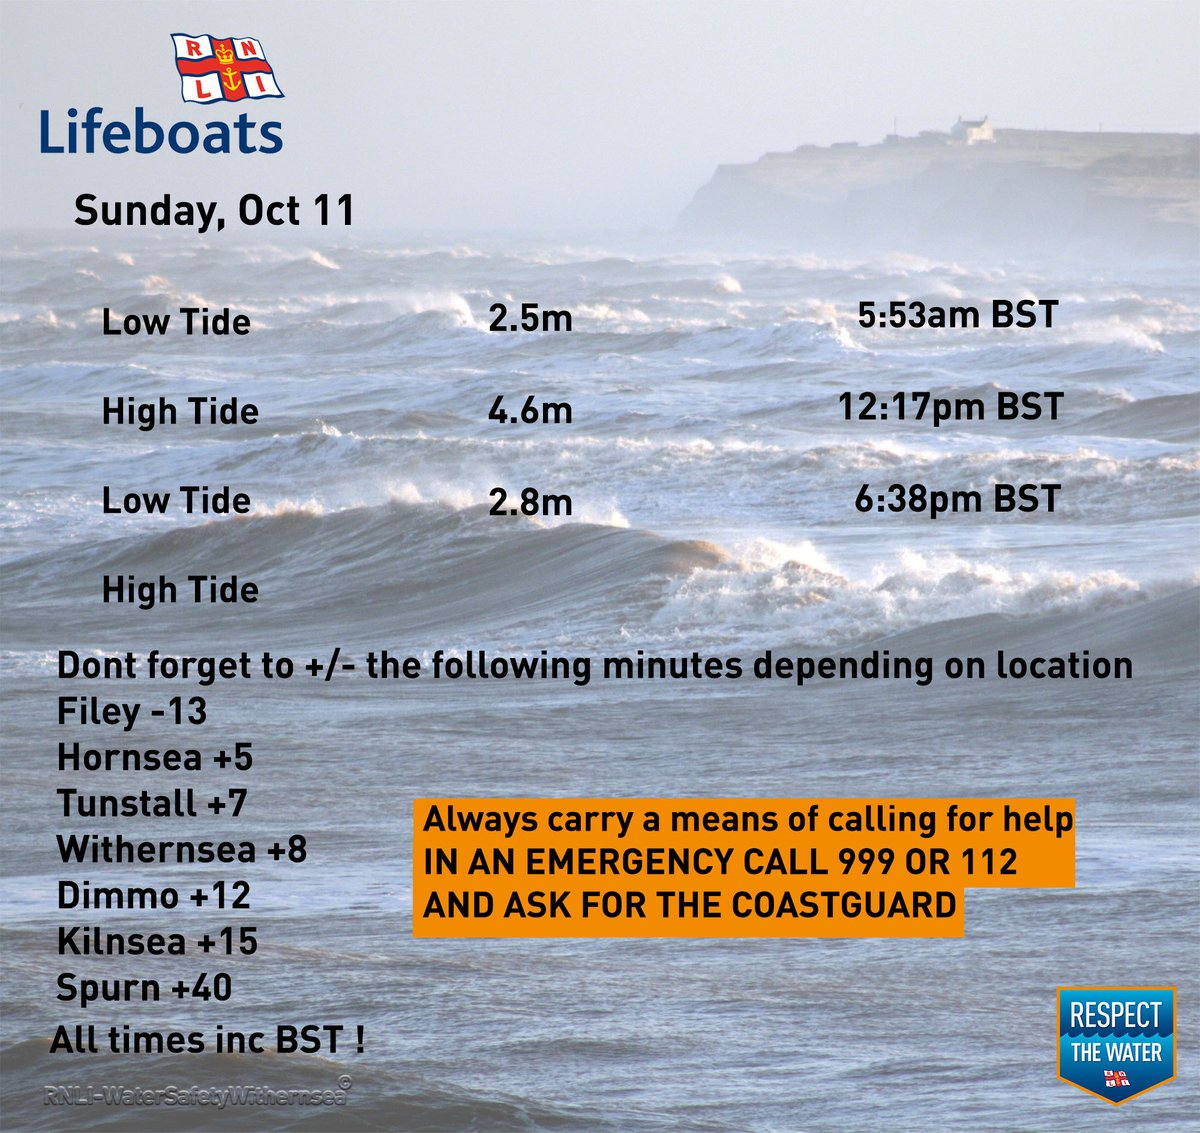 Sunday Oct 11 2020🌊⏲️ #RespectTheWater #BeWaterAware #BeBeachSafe #TideTimes #WaterSafety #Withernsea https://t.co/p94tK1UVyg